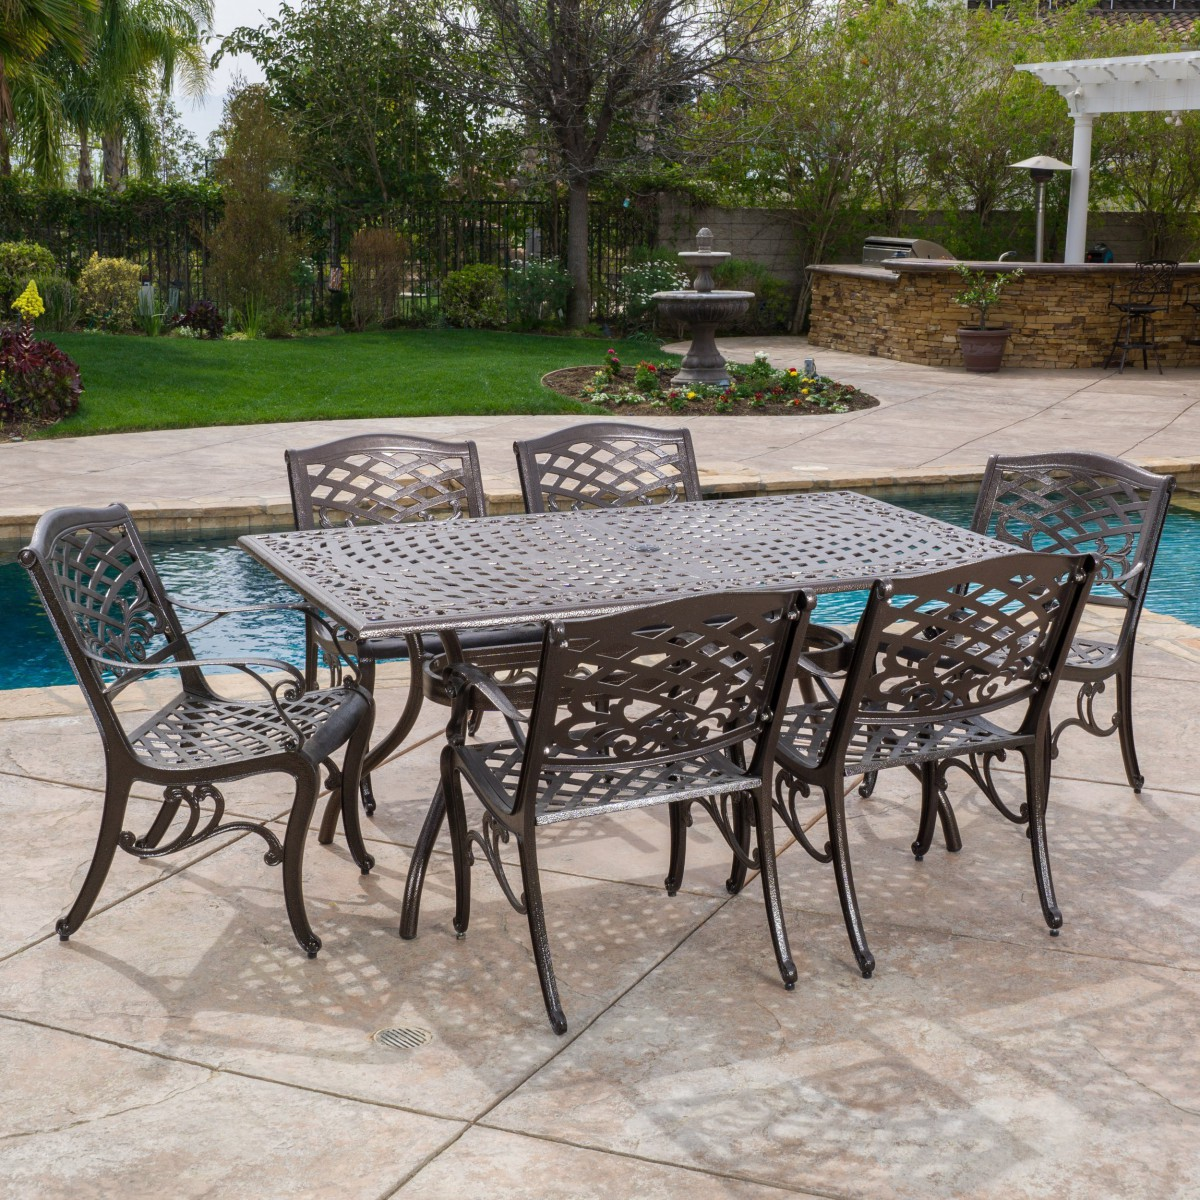 Odena Cast Aluminum 7 Piece Outdoor Dining Set with Rectangular Table